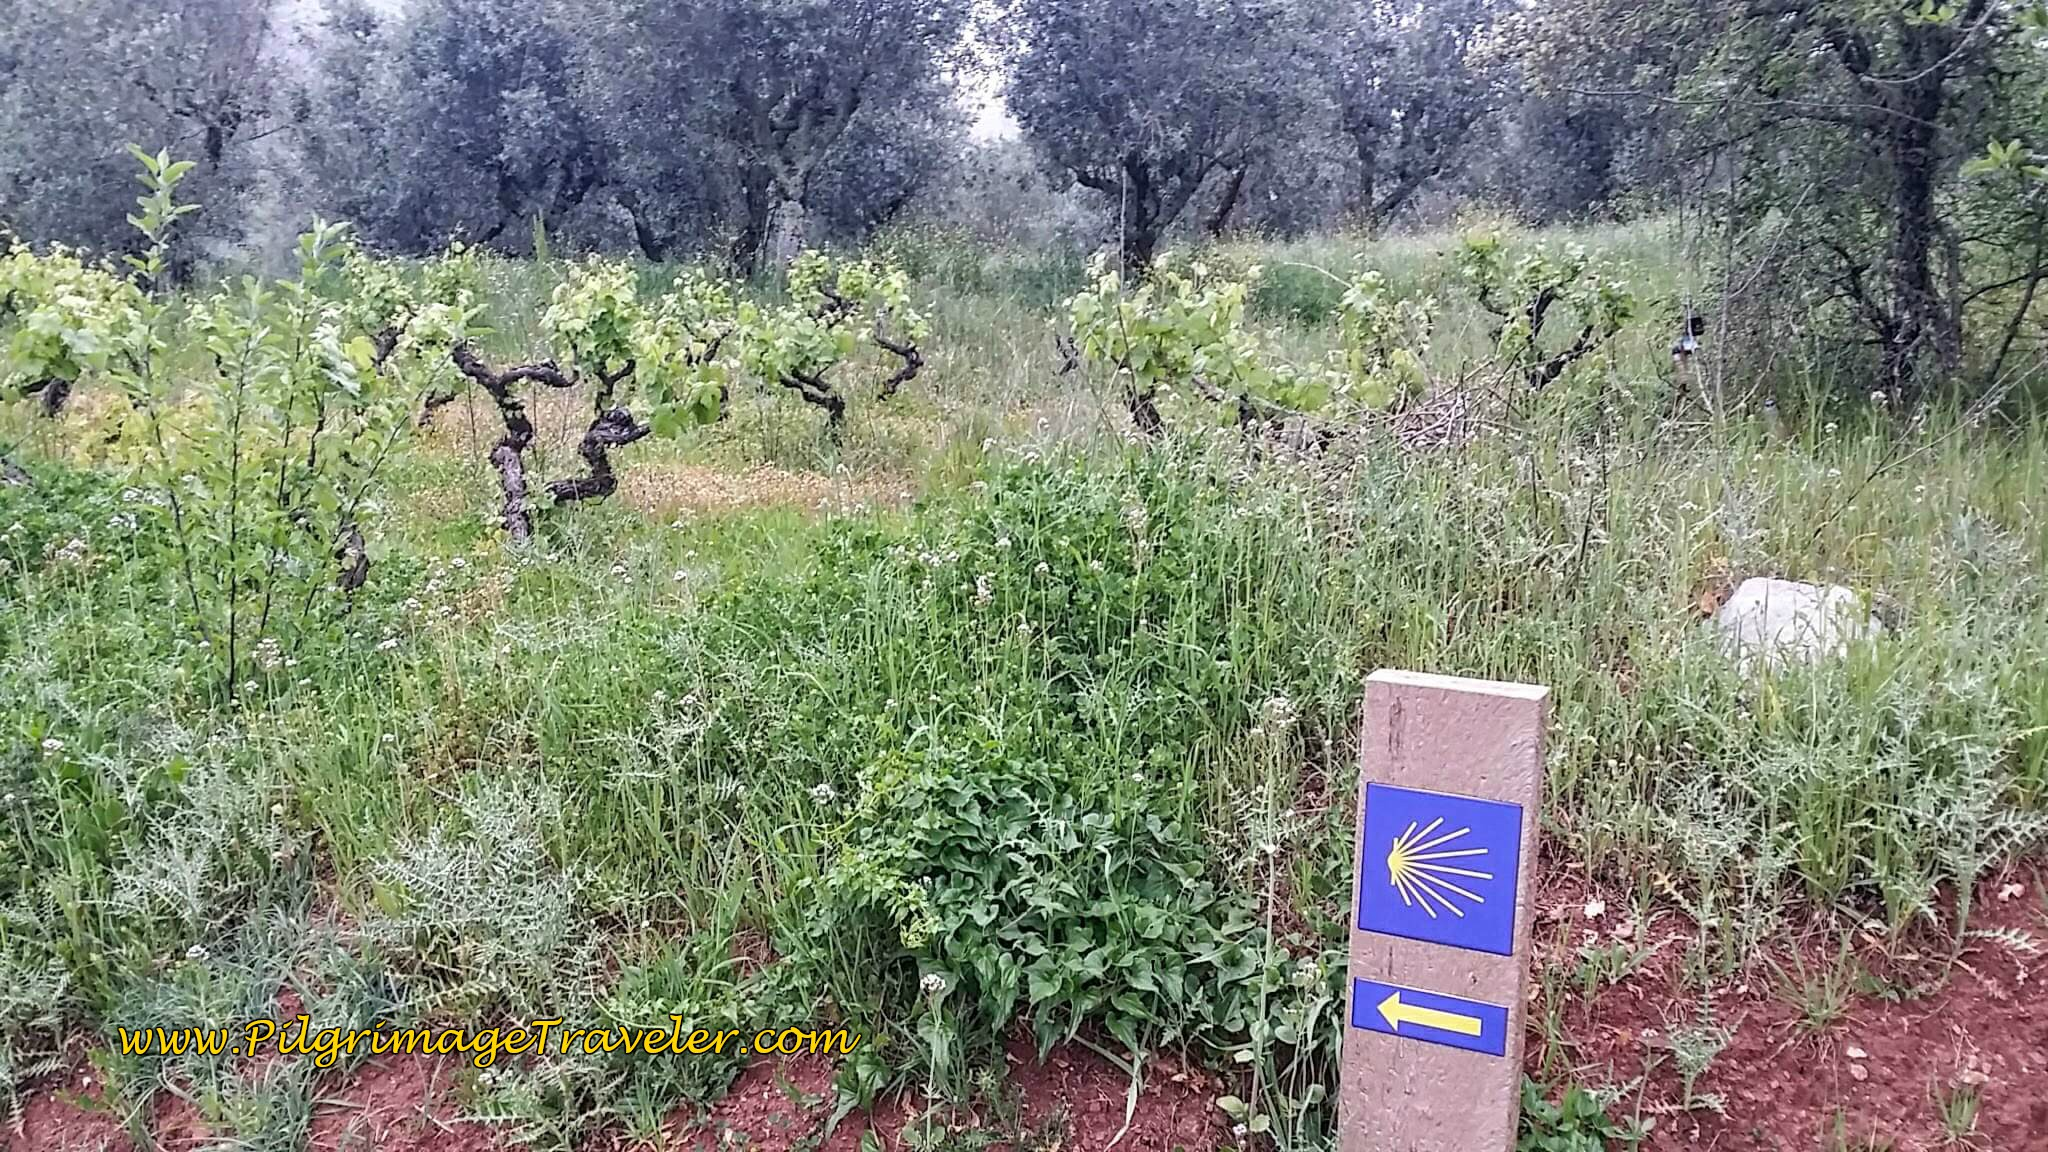 Waymark and Young Grapevines